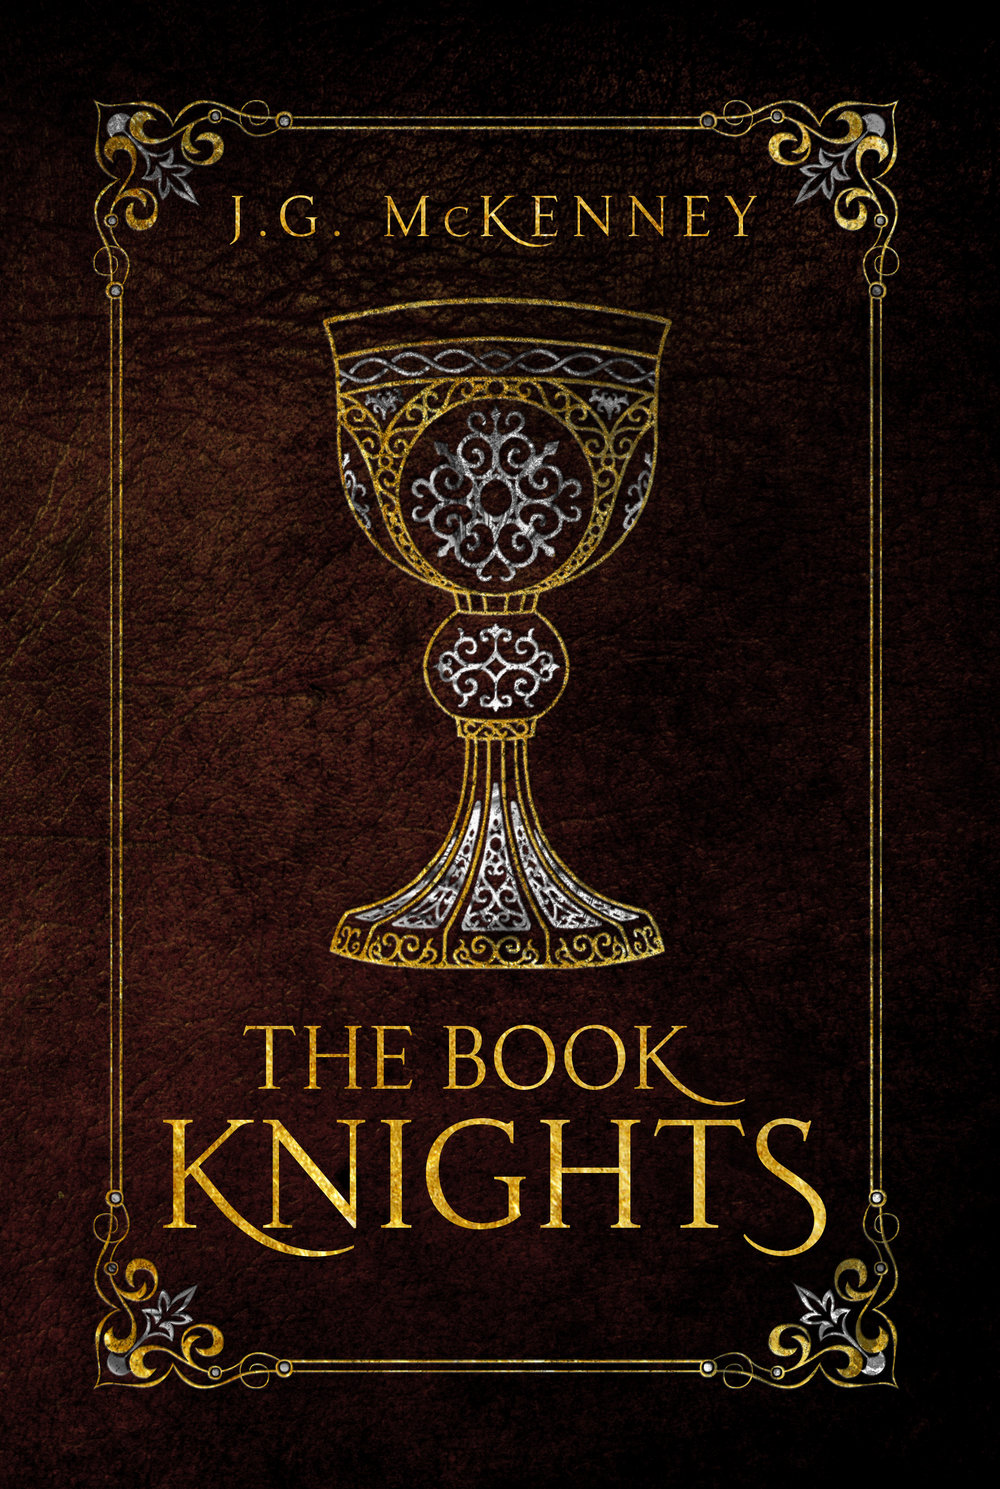 The_Book_Knights_cover.jpg